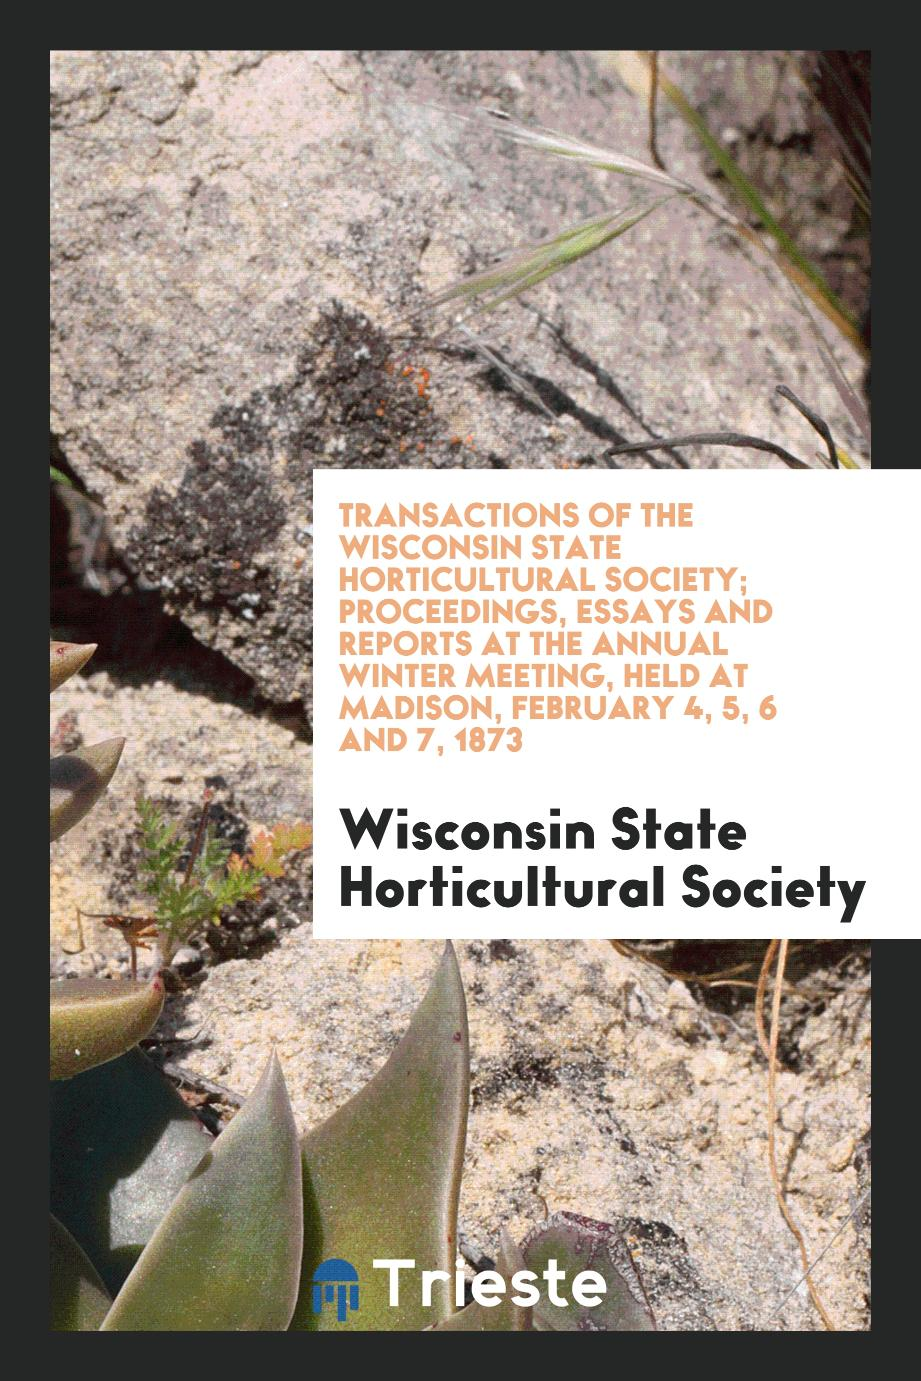 Transactions of the Wisconsin State Horticultural Society; Proceedings, Essays and Reports at the Annual Winter Meeting, Held at Madison, February 4, 5, 6 and 7, 1873